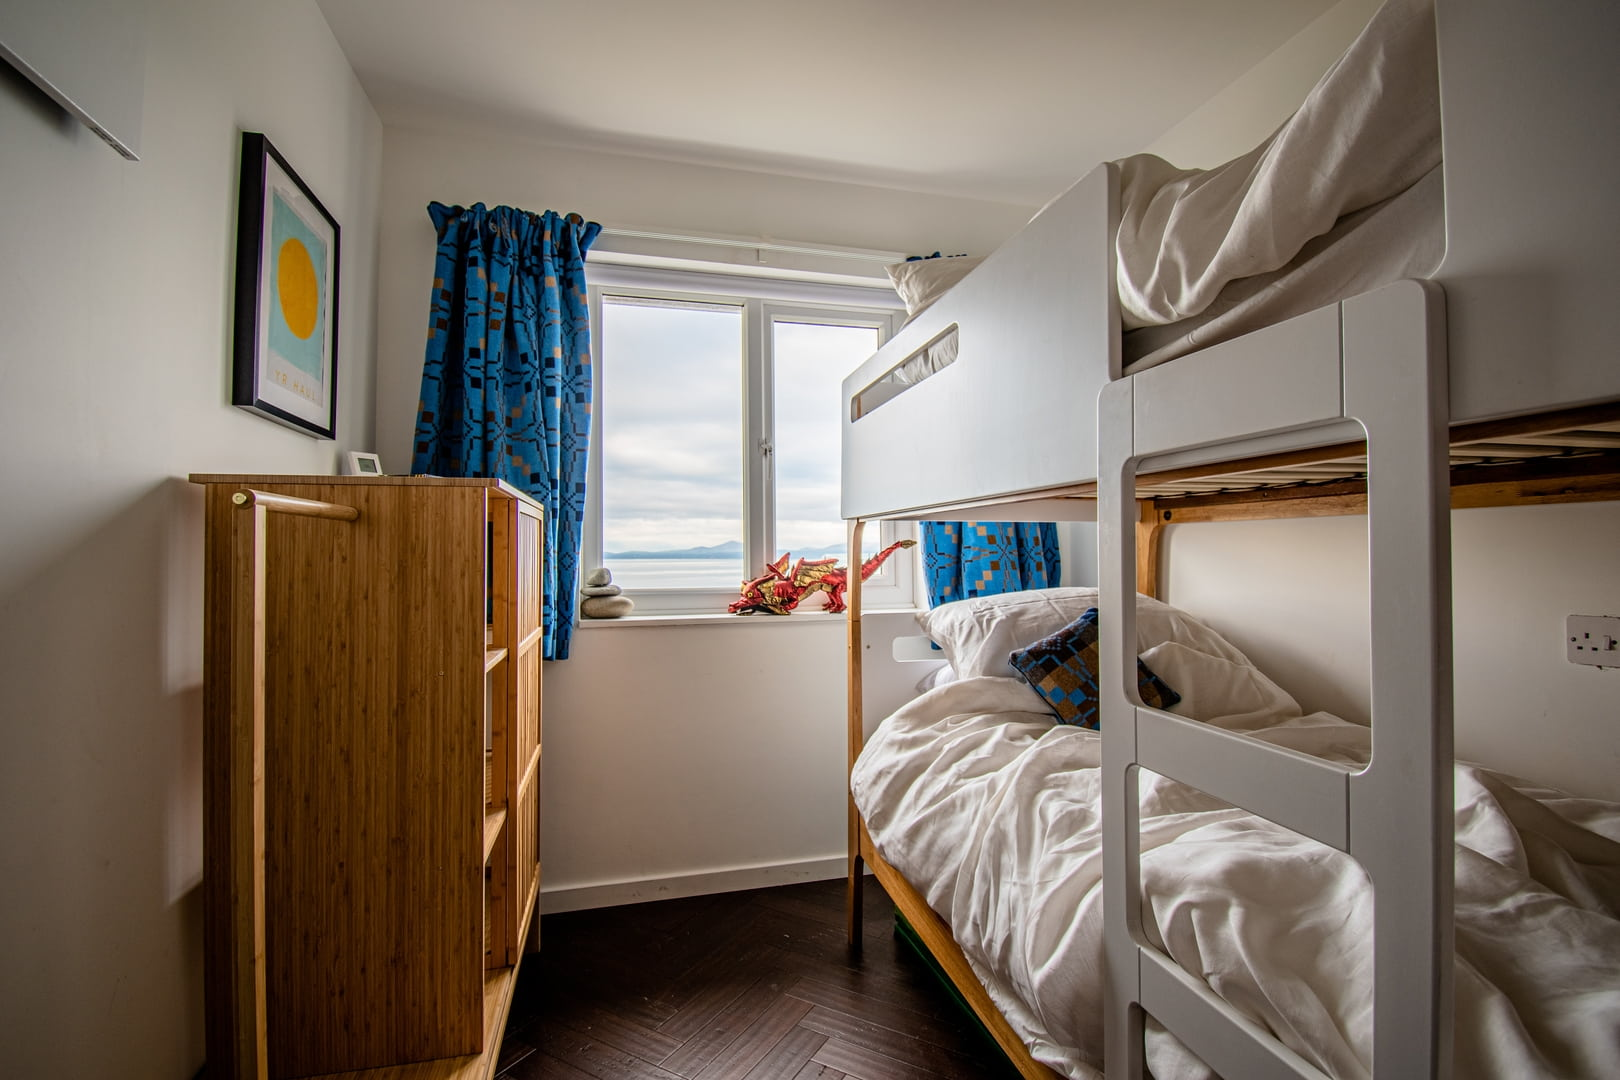 The Bunk Room with sea views